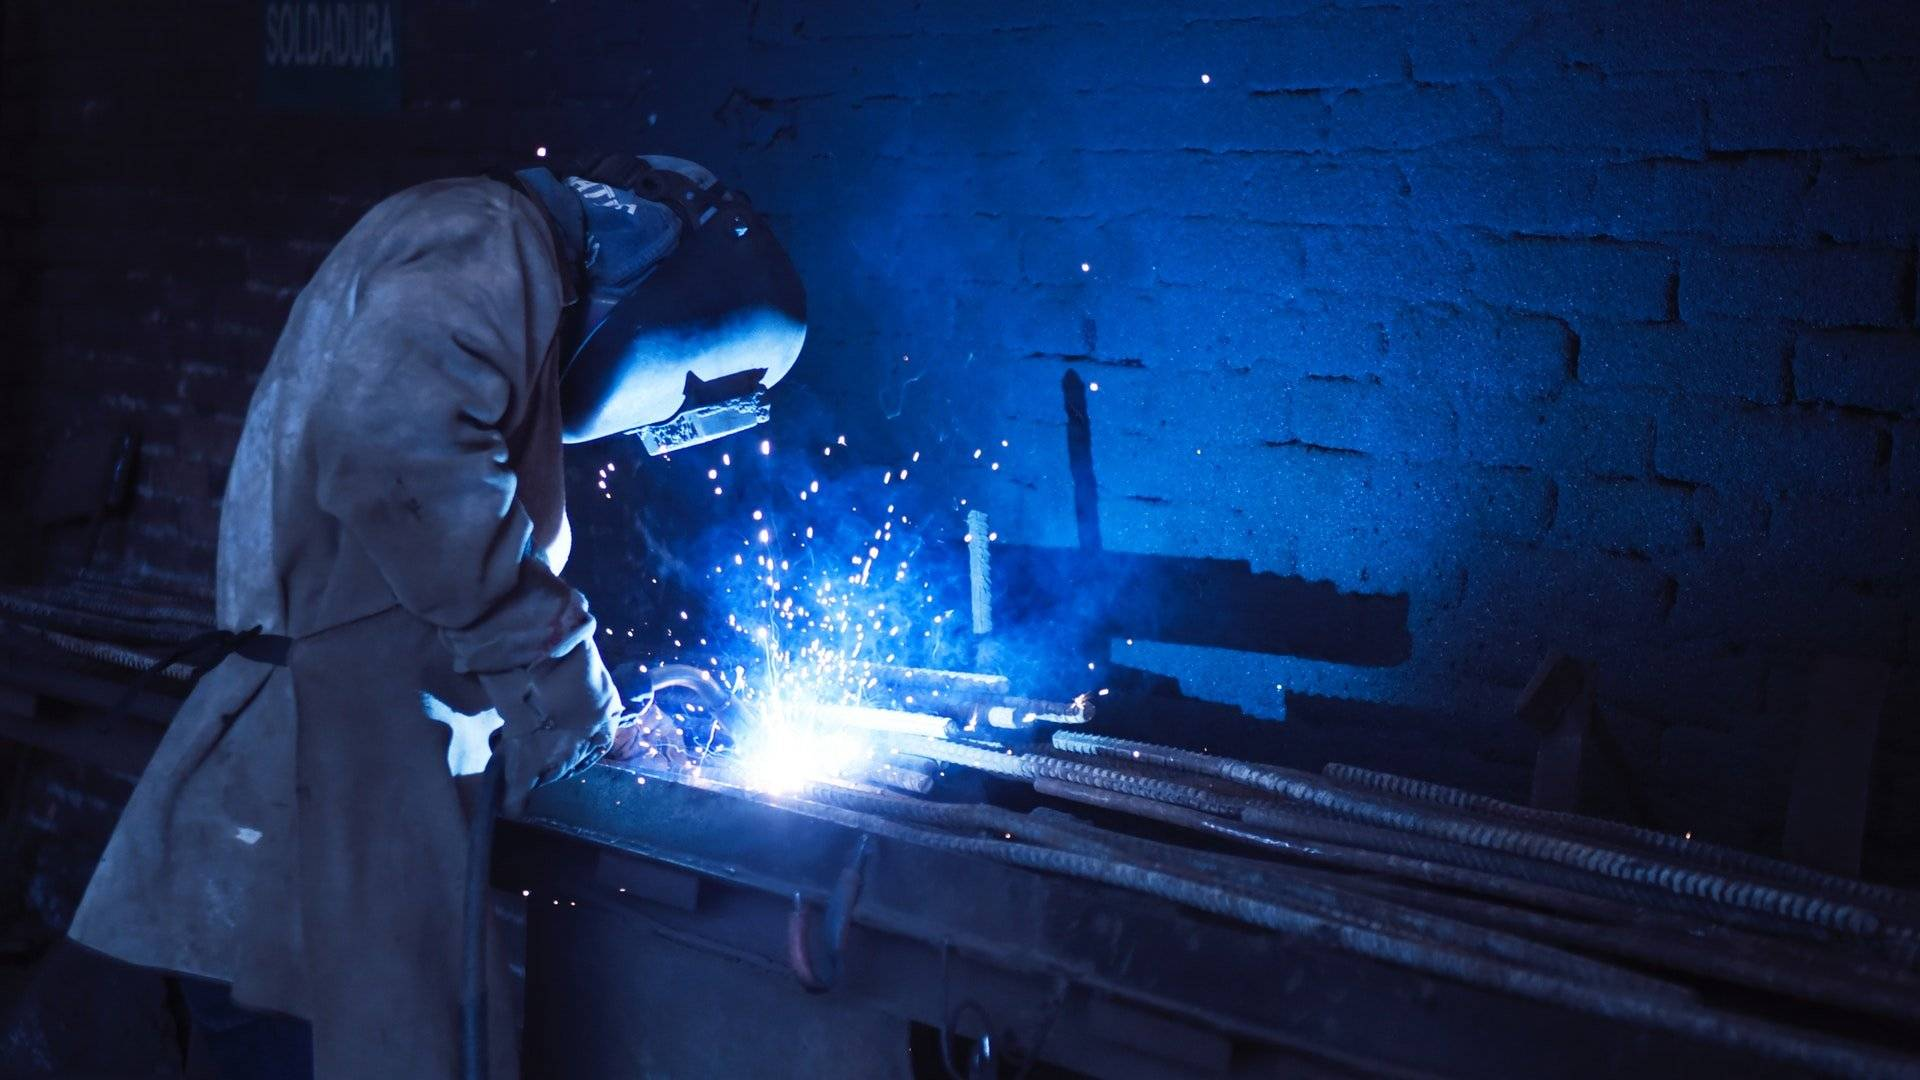 person with welding mask welds steel rods